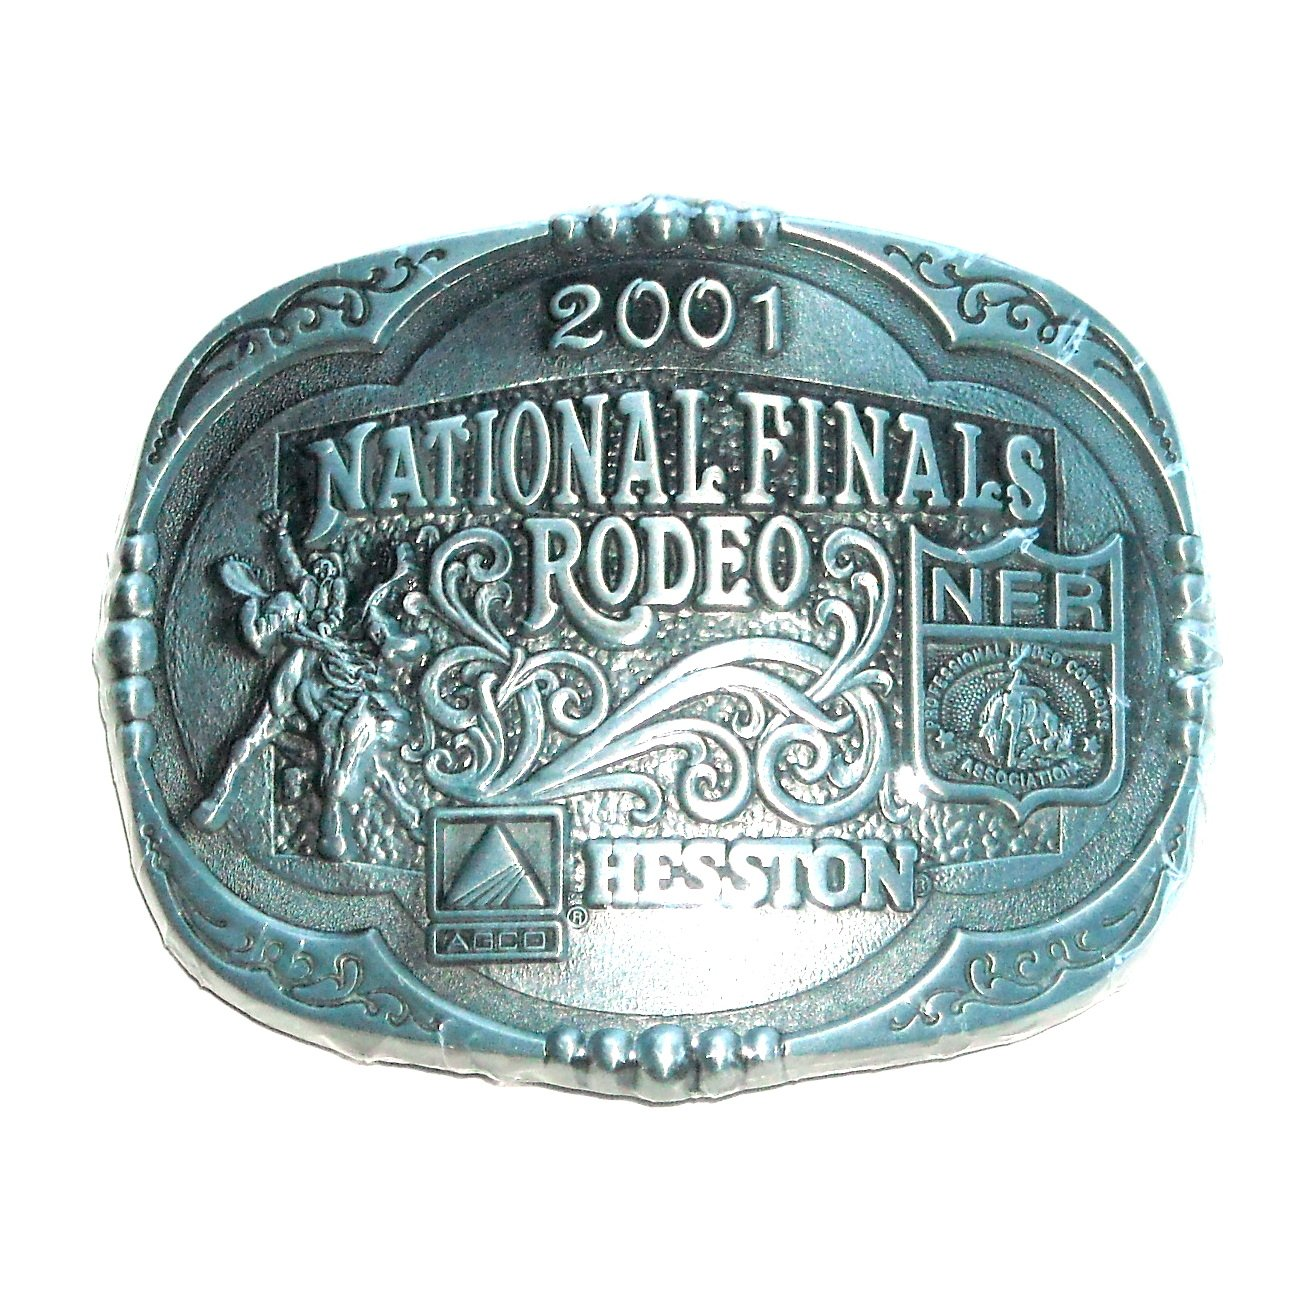 AGCO Professional Rodeo 2001 Cowboys Montana Silversmiths Belt Buckle